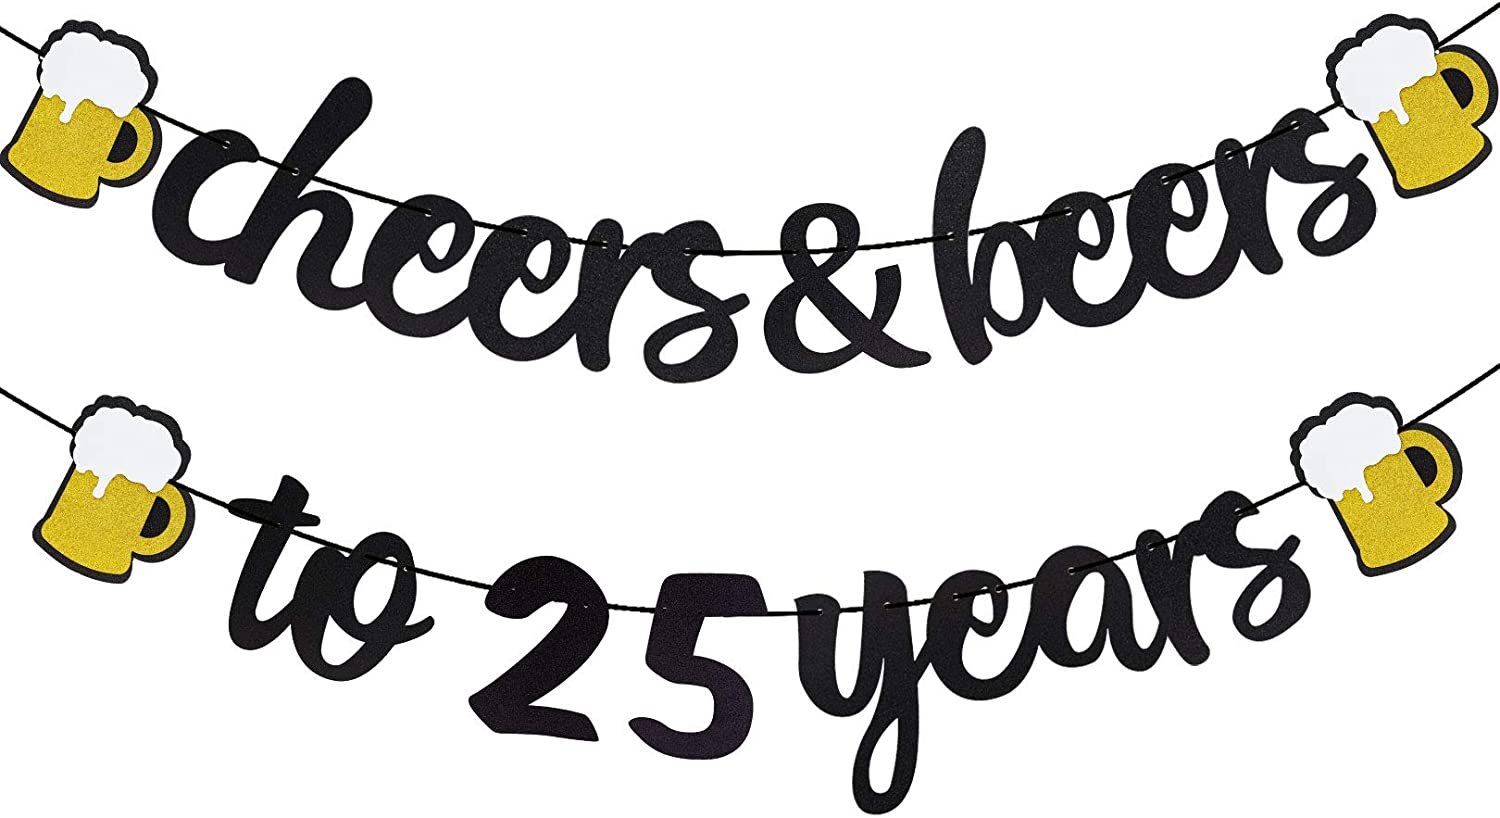 Purp Pie Cheers and Beers to 25 Years Banner Black Glitter 25th Happy Birthday Themed Sign Decor Twenty-Five Wedding Anniversary Party Decorations Supplies